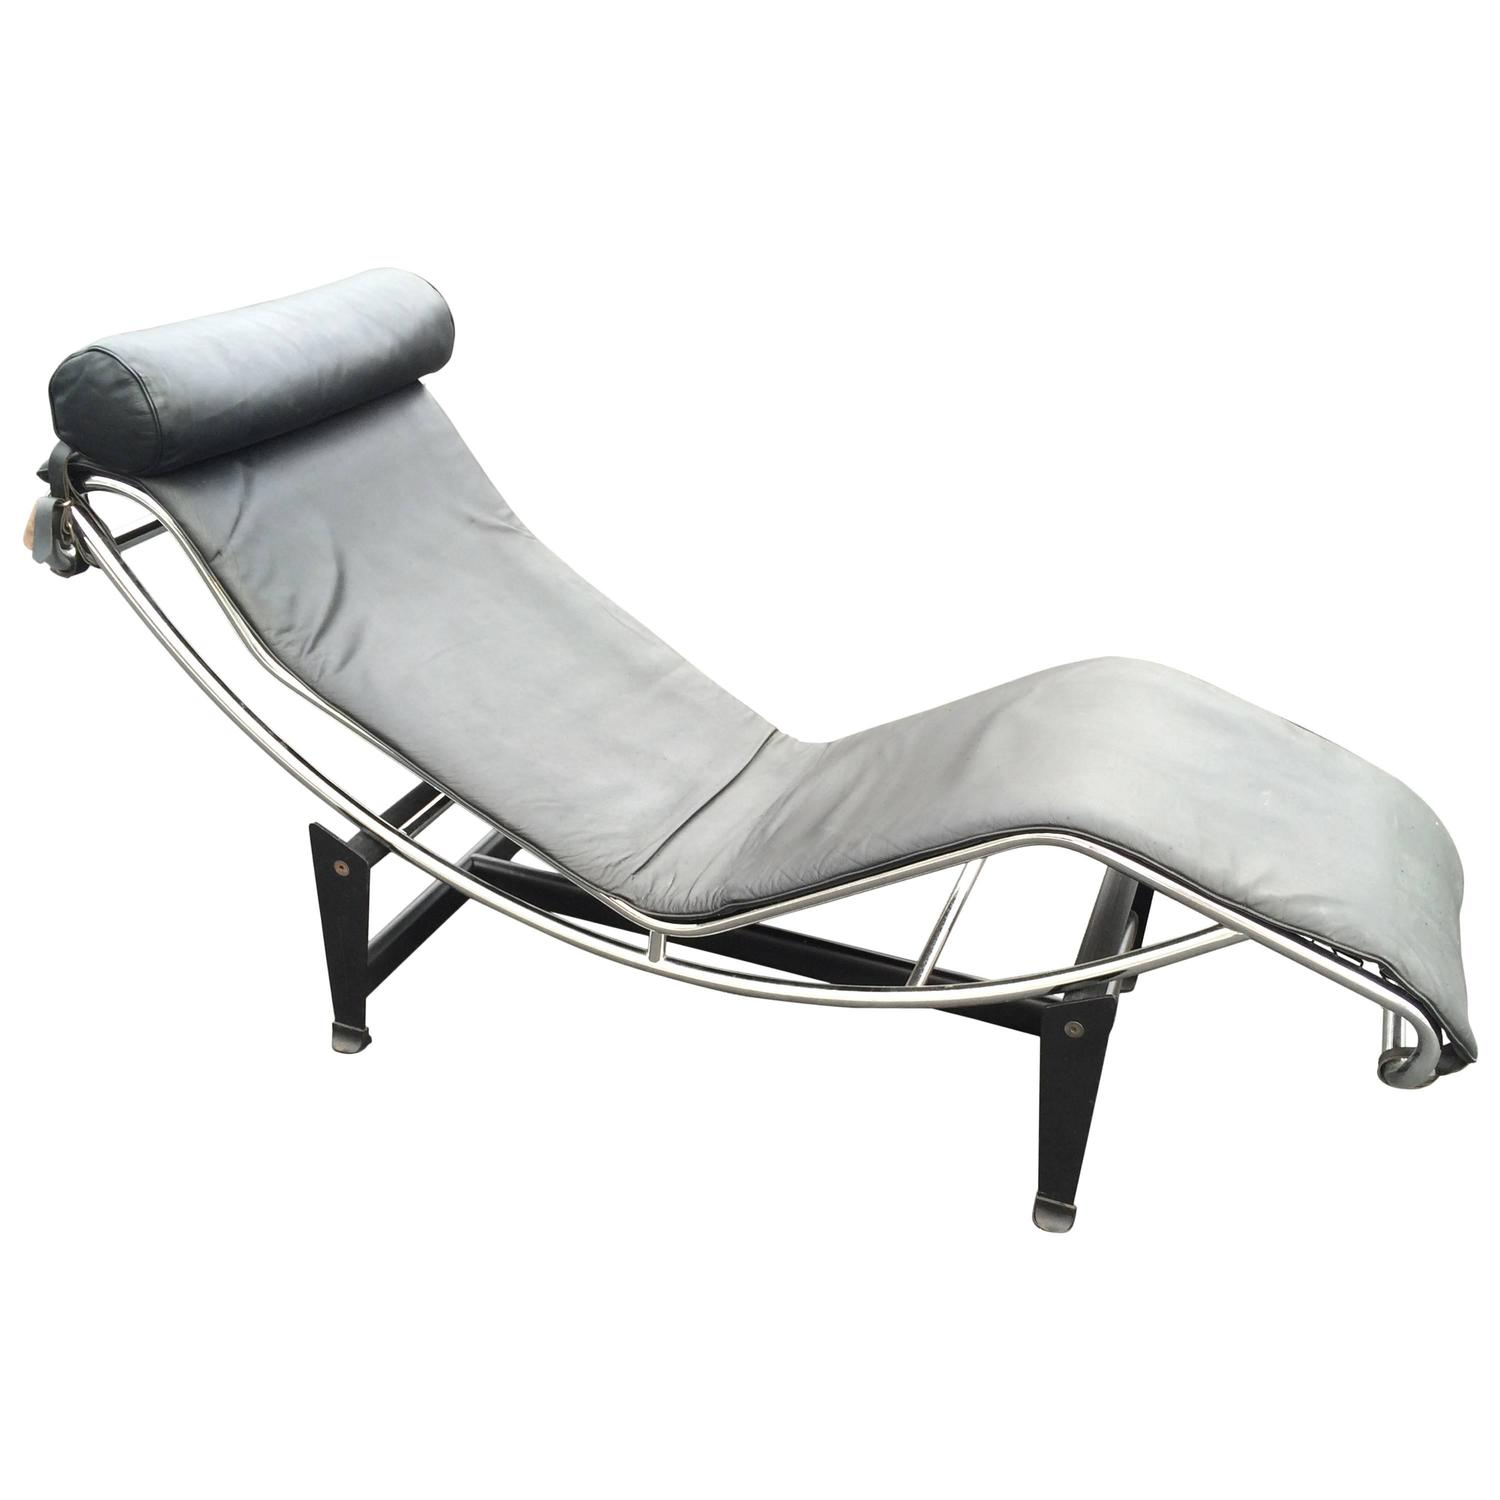 le corbusier lc4 chaise longue in black leather at 1stdibs. Black Bedroom Furniture Sets. Home Design Ideas